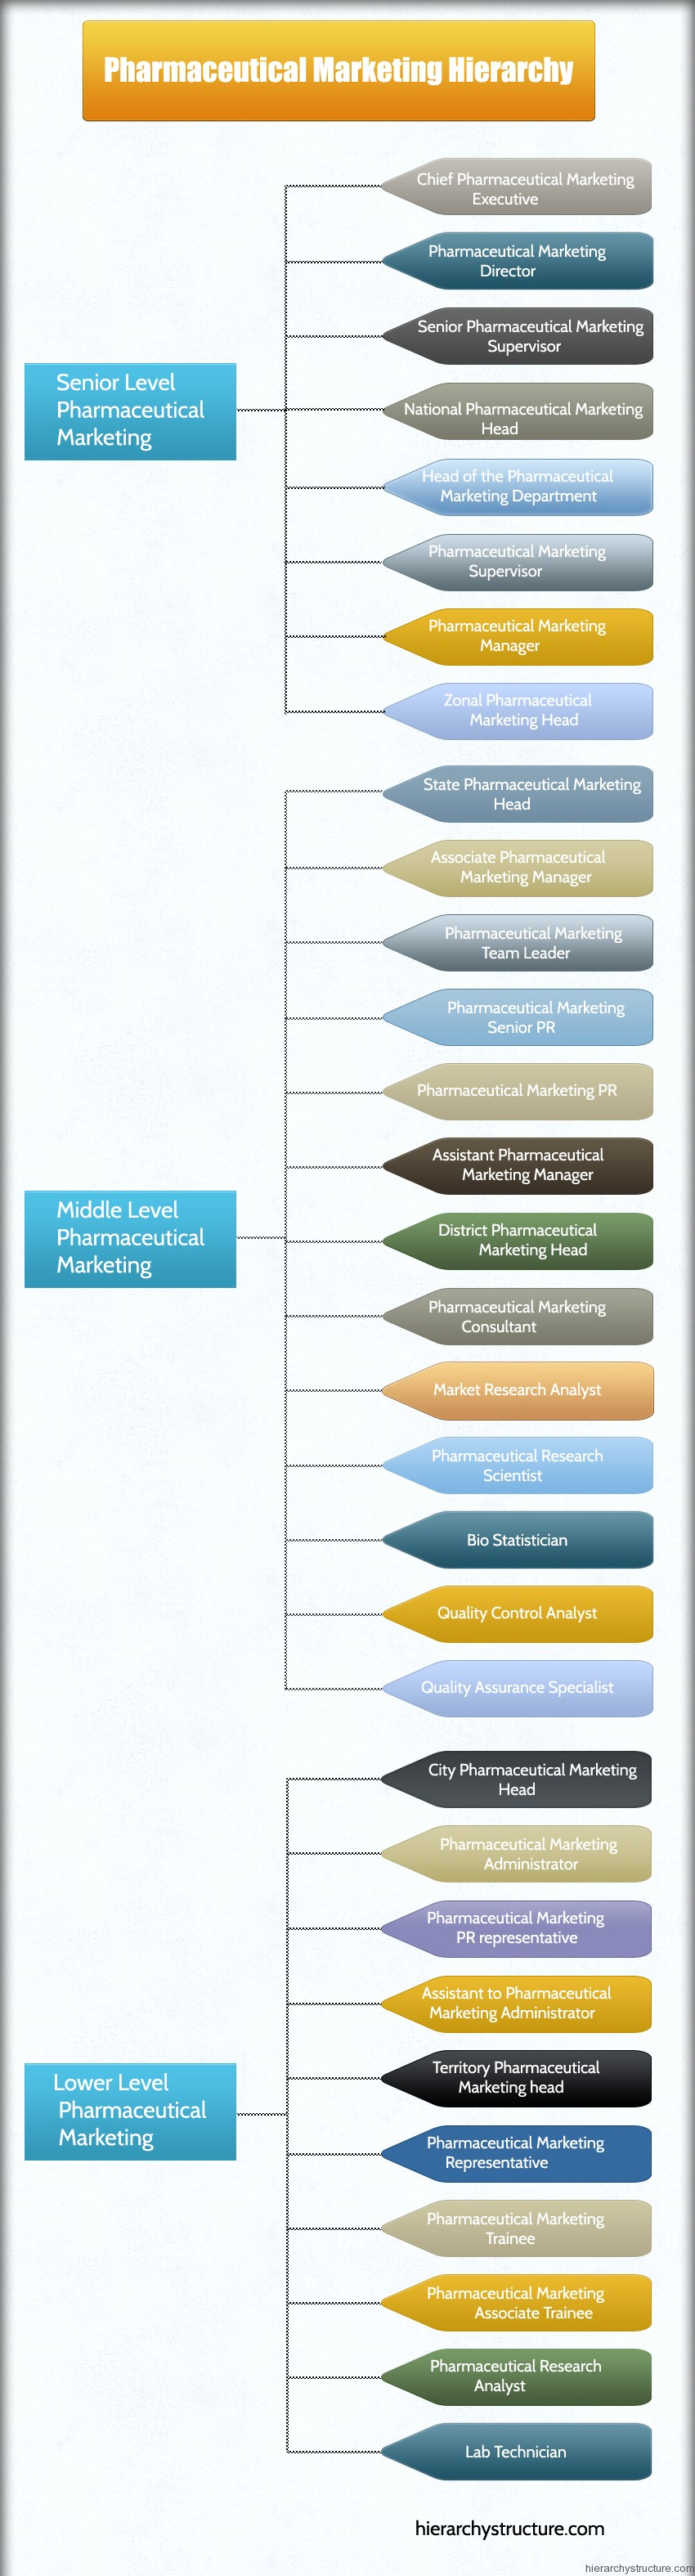 Pharmaceutical Marketing Hierarchy